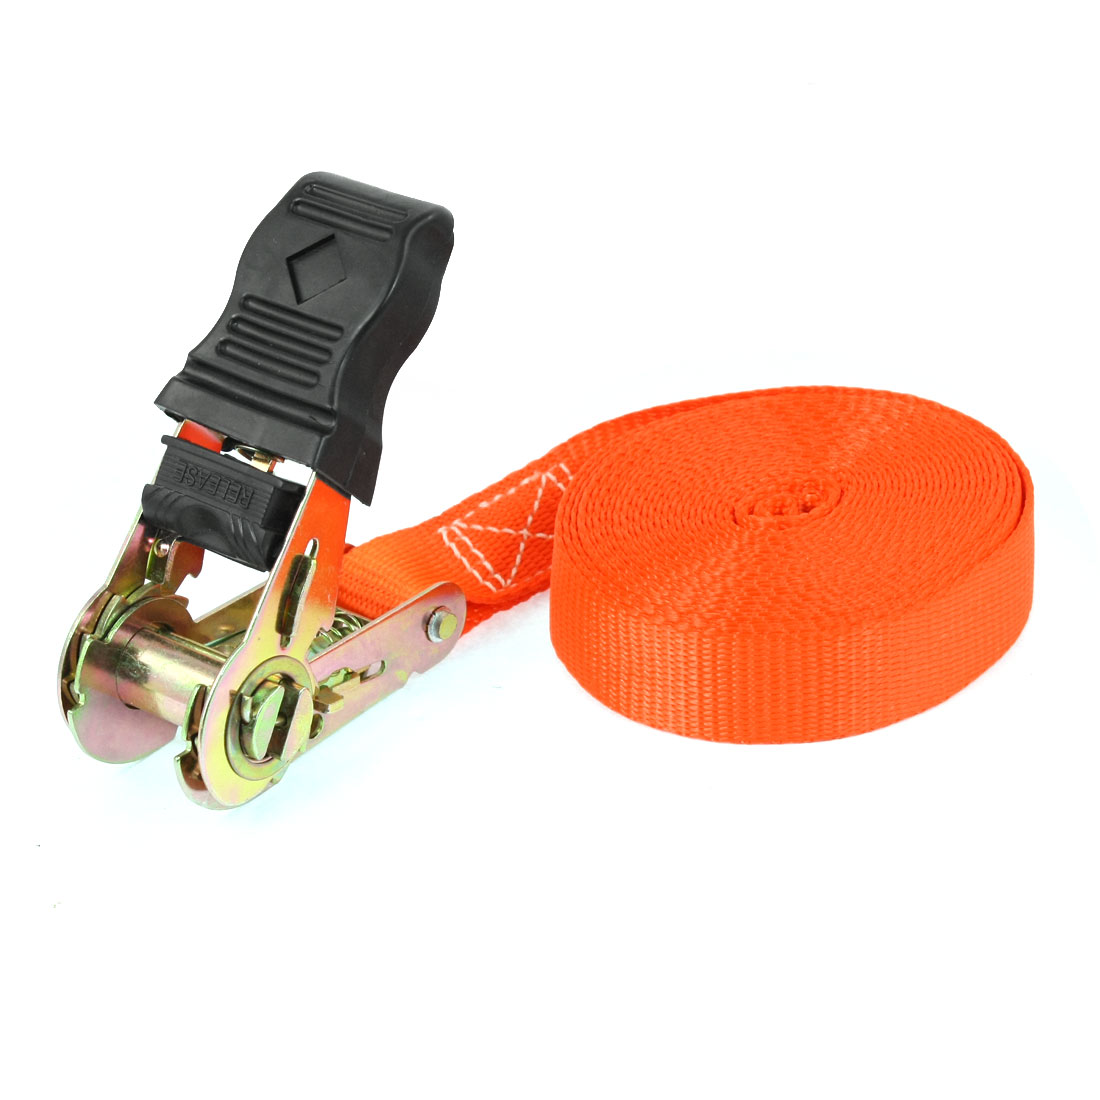 Self-driving Travel Luggage Binding Metal Ratchet Tie Down Strap 5M Orange